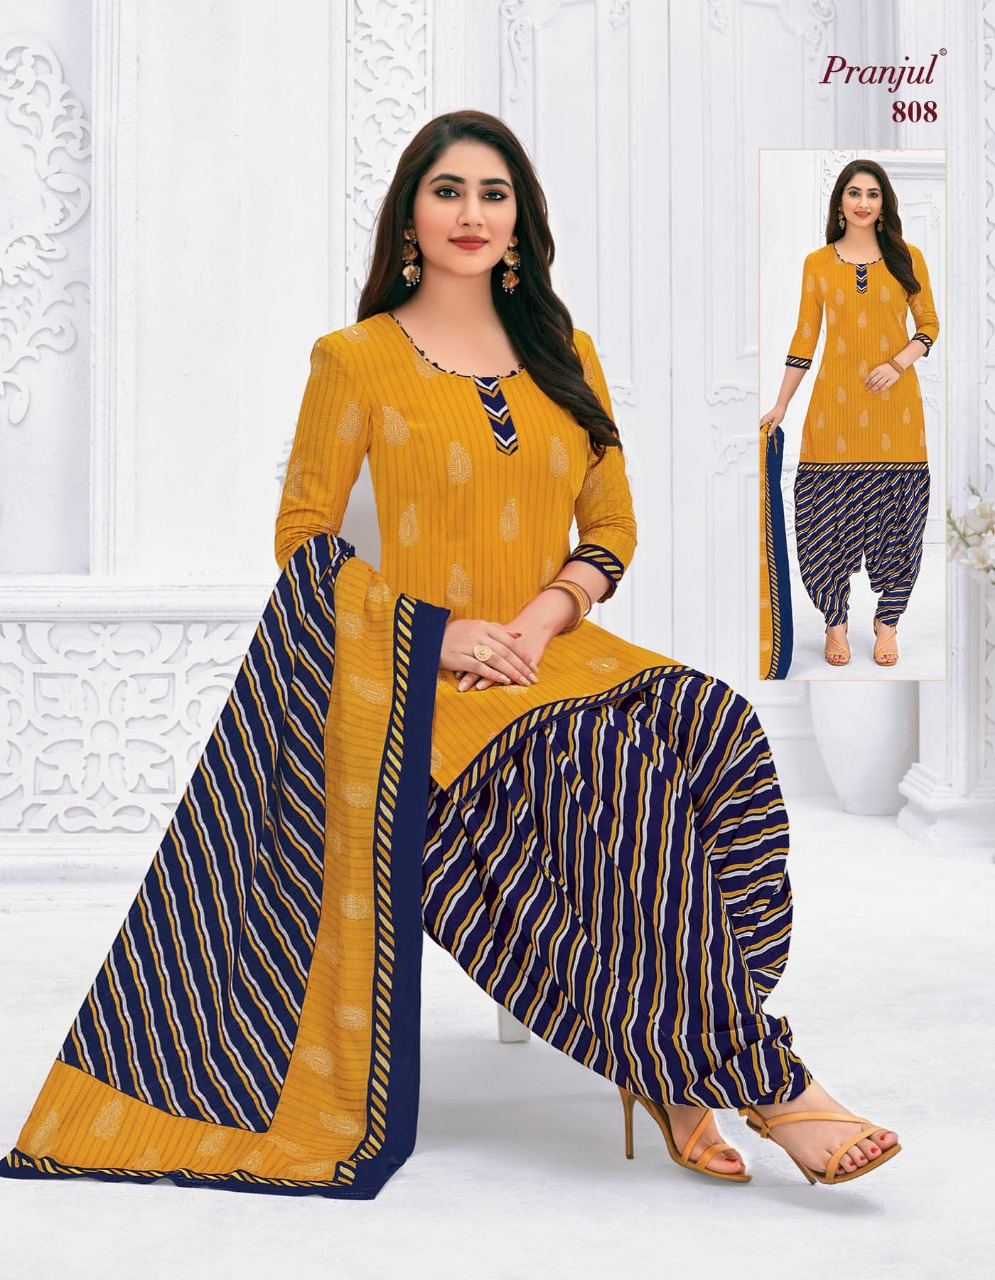 Pranjul Priyanka Vol 8 A Readymade Suit Wholesale Catalog 15 Pcs 3 - Pranjul Priyanka Vol 8 A Readymade Suit Wholesale Catalog 15 Pcs